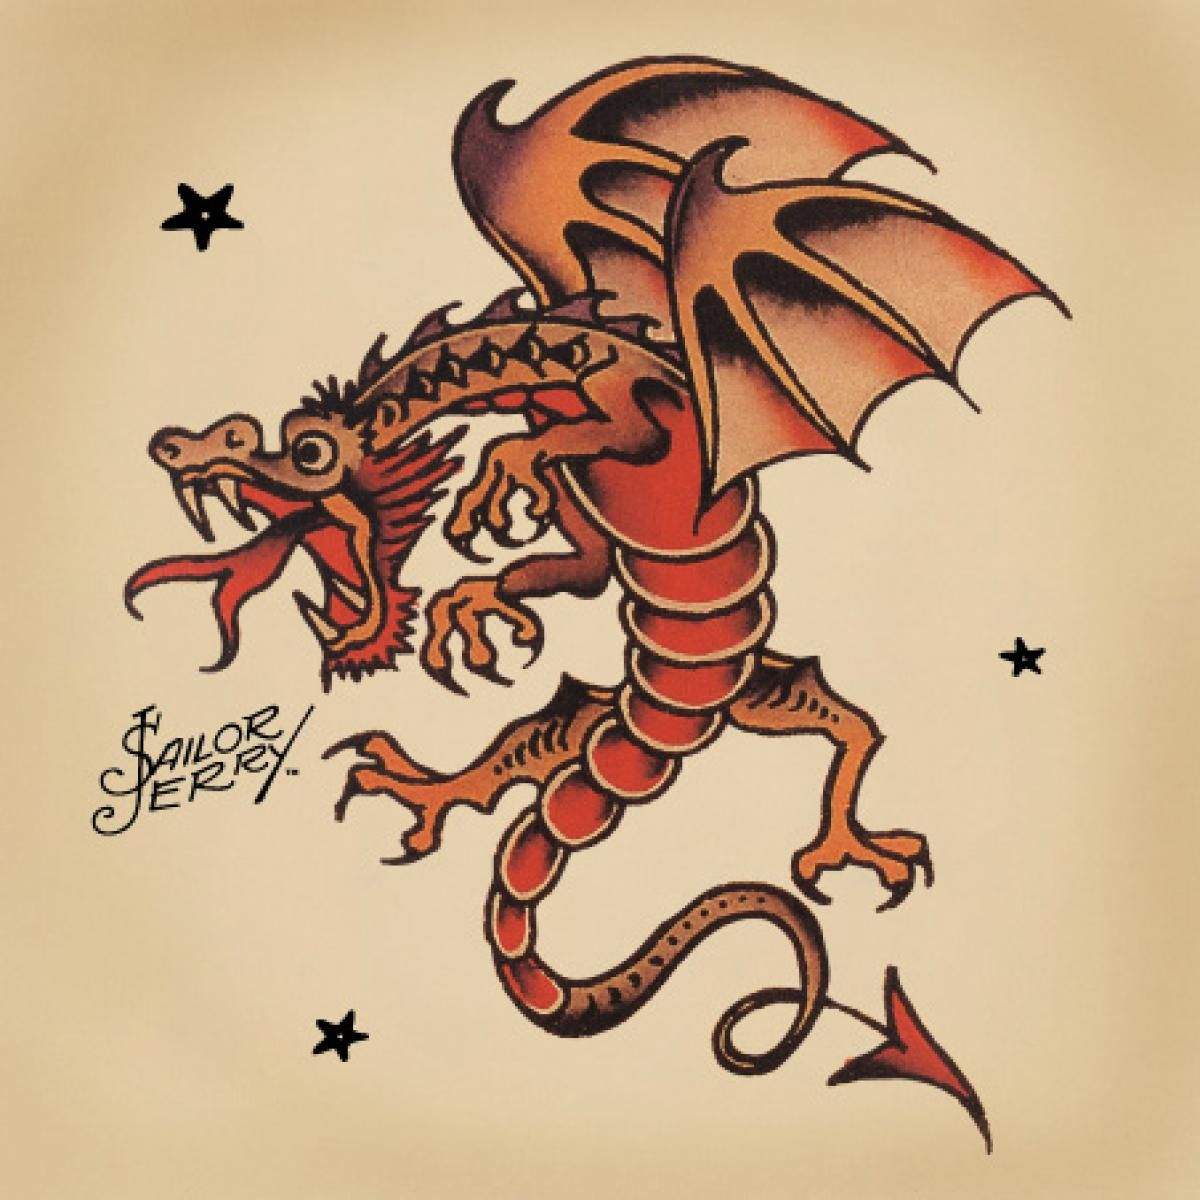 Traditional Dragon Tattoo Sailor Jerry Jerrys Dragons